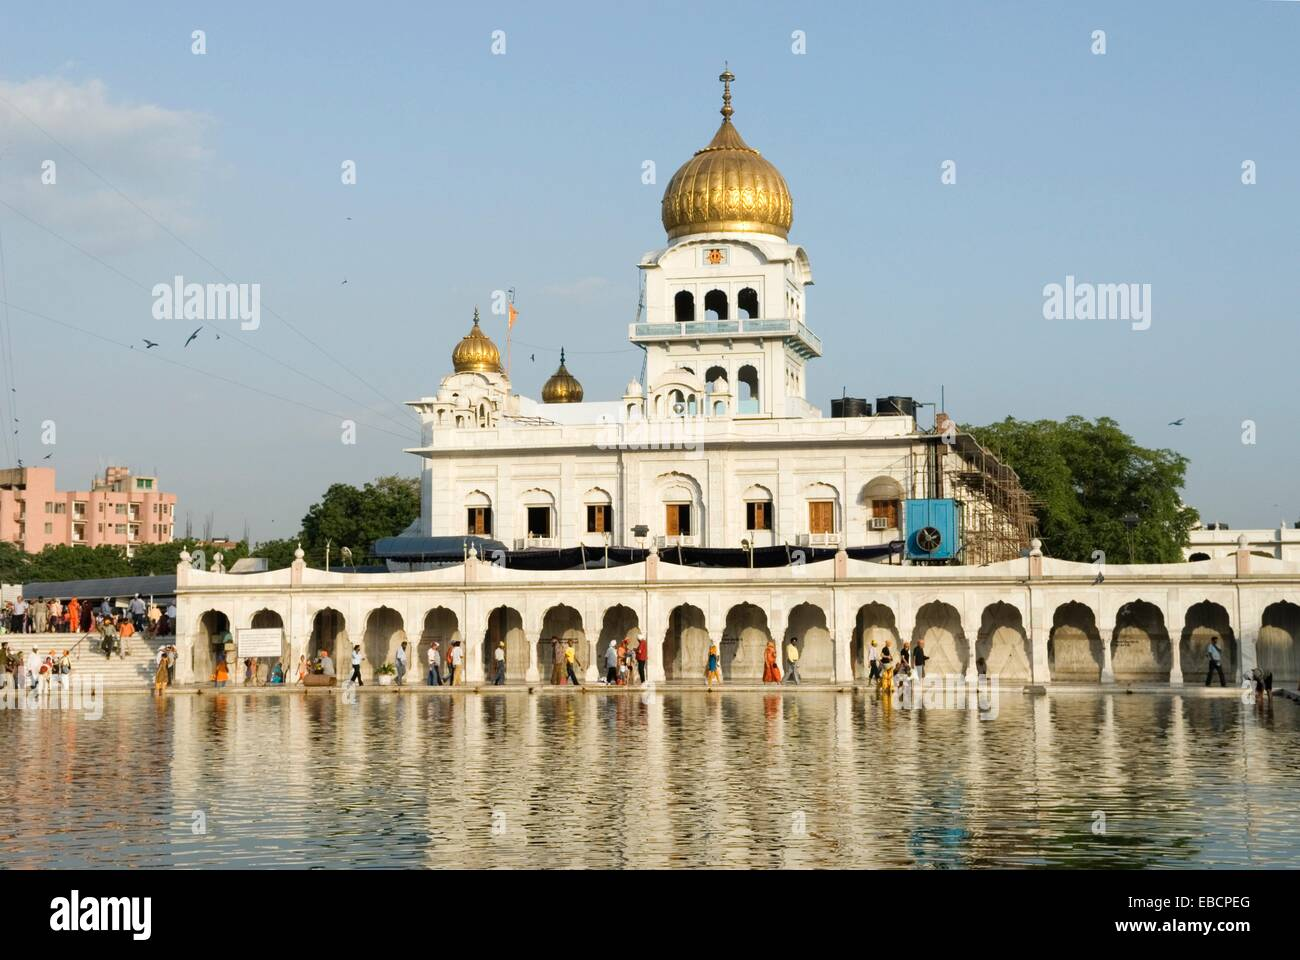 the ´ Sarovar´pond whose water is considered holy, inside Gurudwara Bangla Sahib, the most prominent Sikh - Stock Image